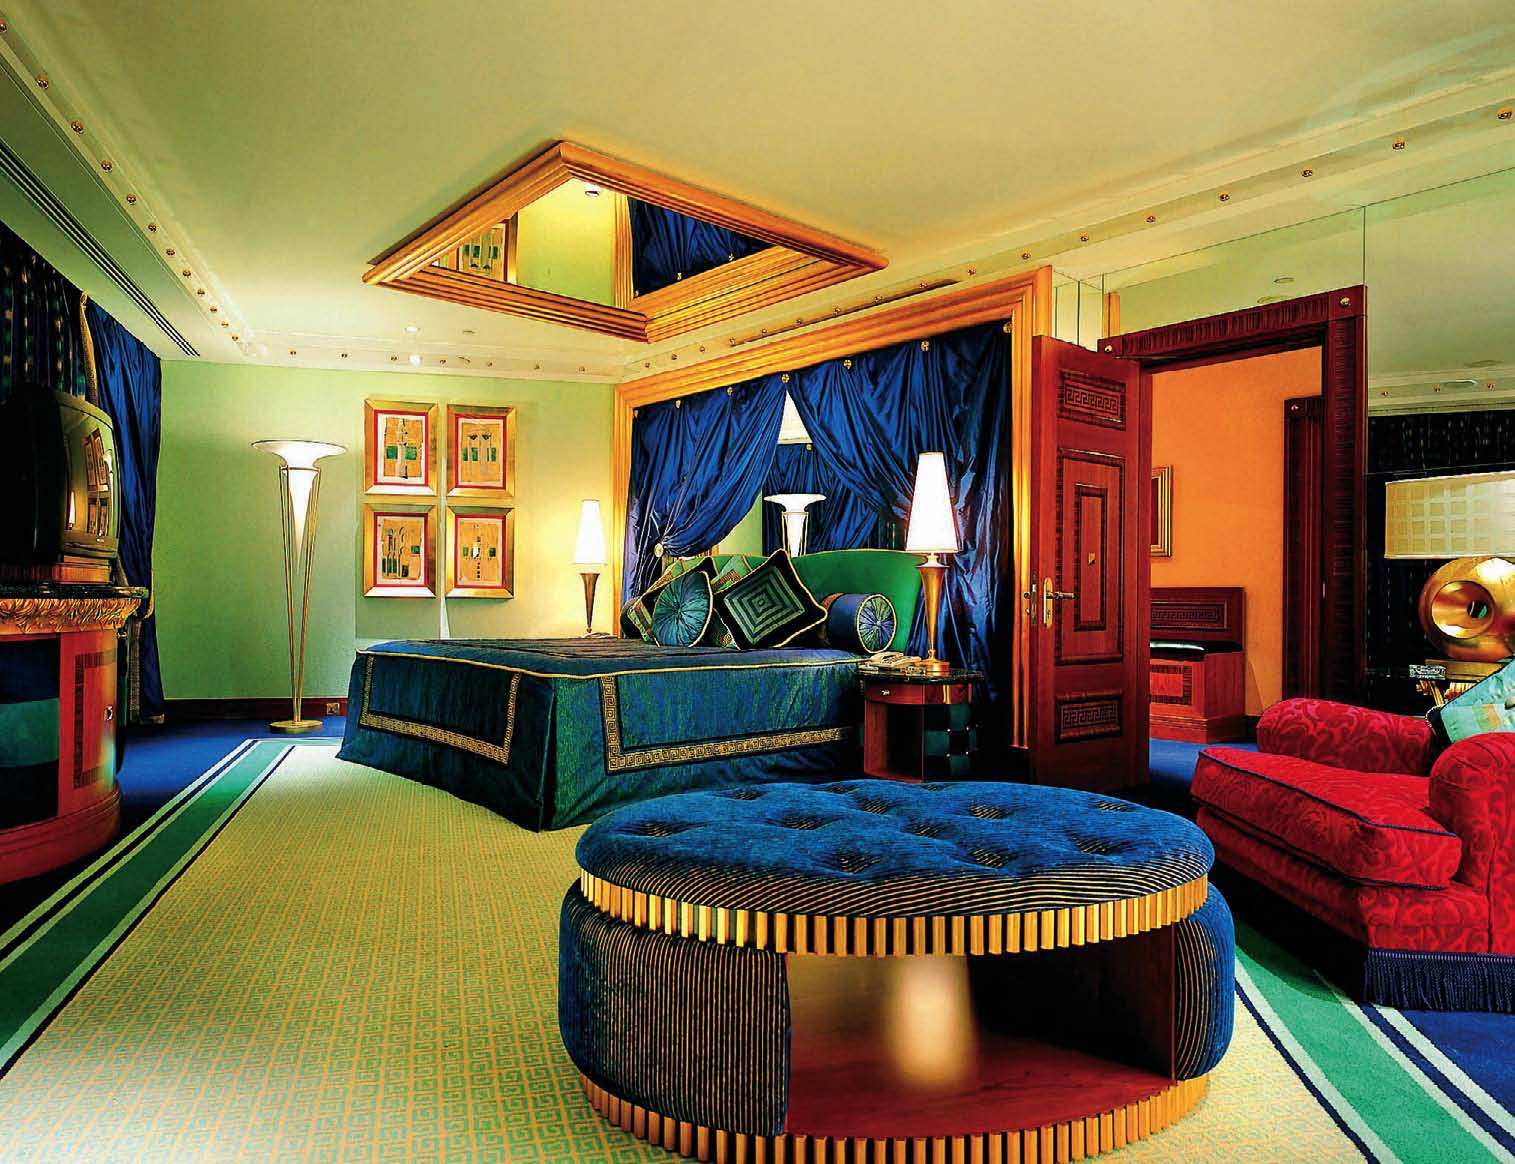 Tourism world burj al arab for Burj al arab interior